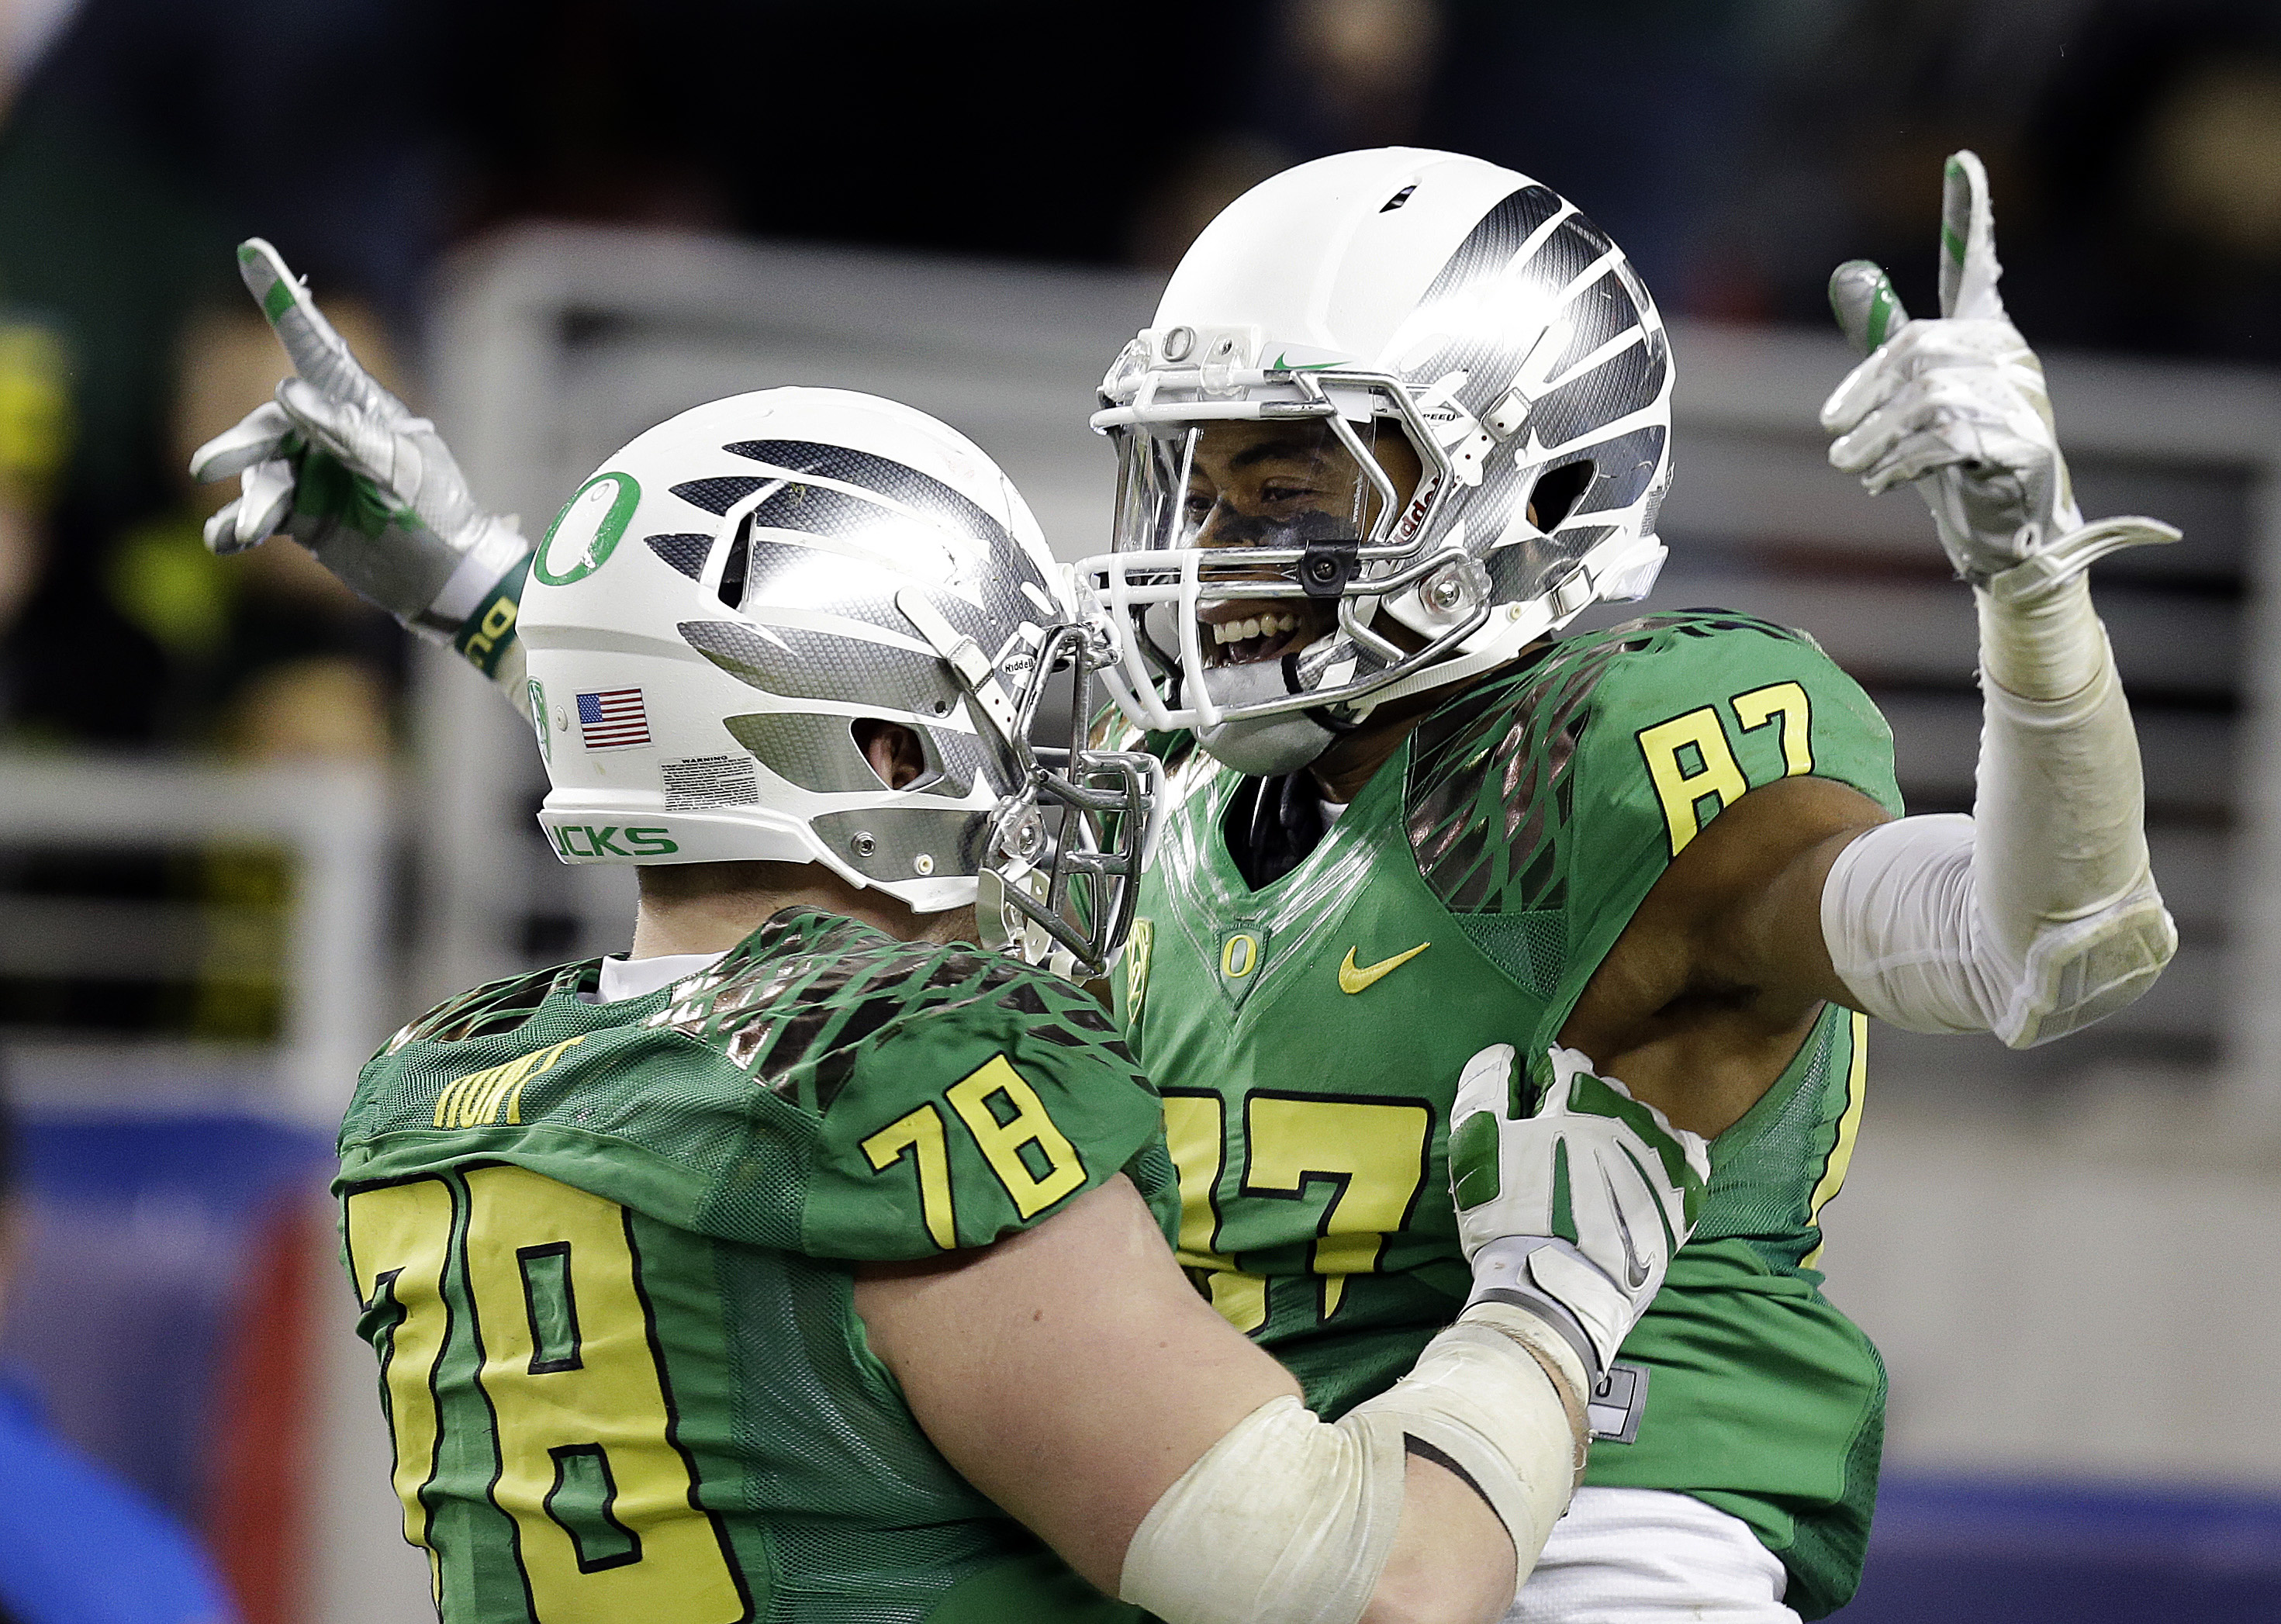 Oregon's Cameron Hunt, left, celebrates a touchdown made by Darren Carrington (87) during the second half of a Pac-12 Conference championship NCAA college football game against Arizona Friday, Dec. 5, 2014, in Santa Clara, Calif. Oregon won the game, 51-13. (AP Photo/Ben Margot)